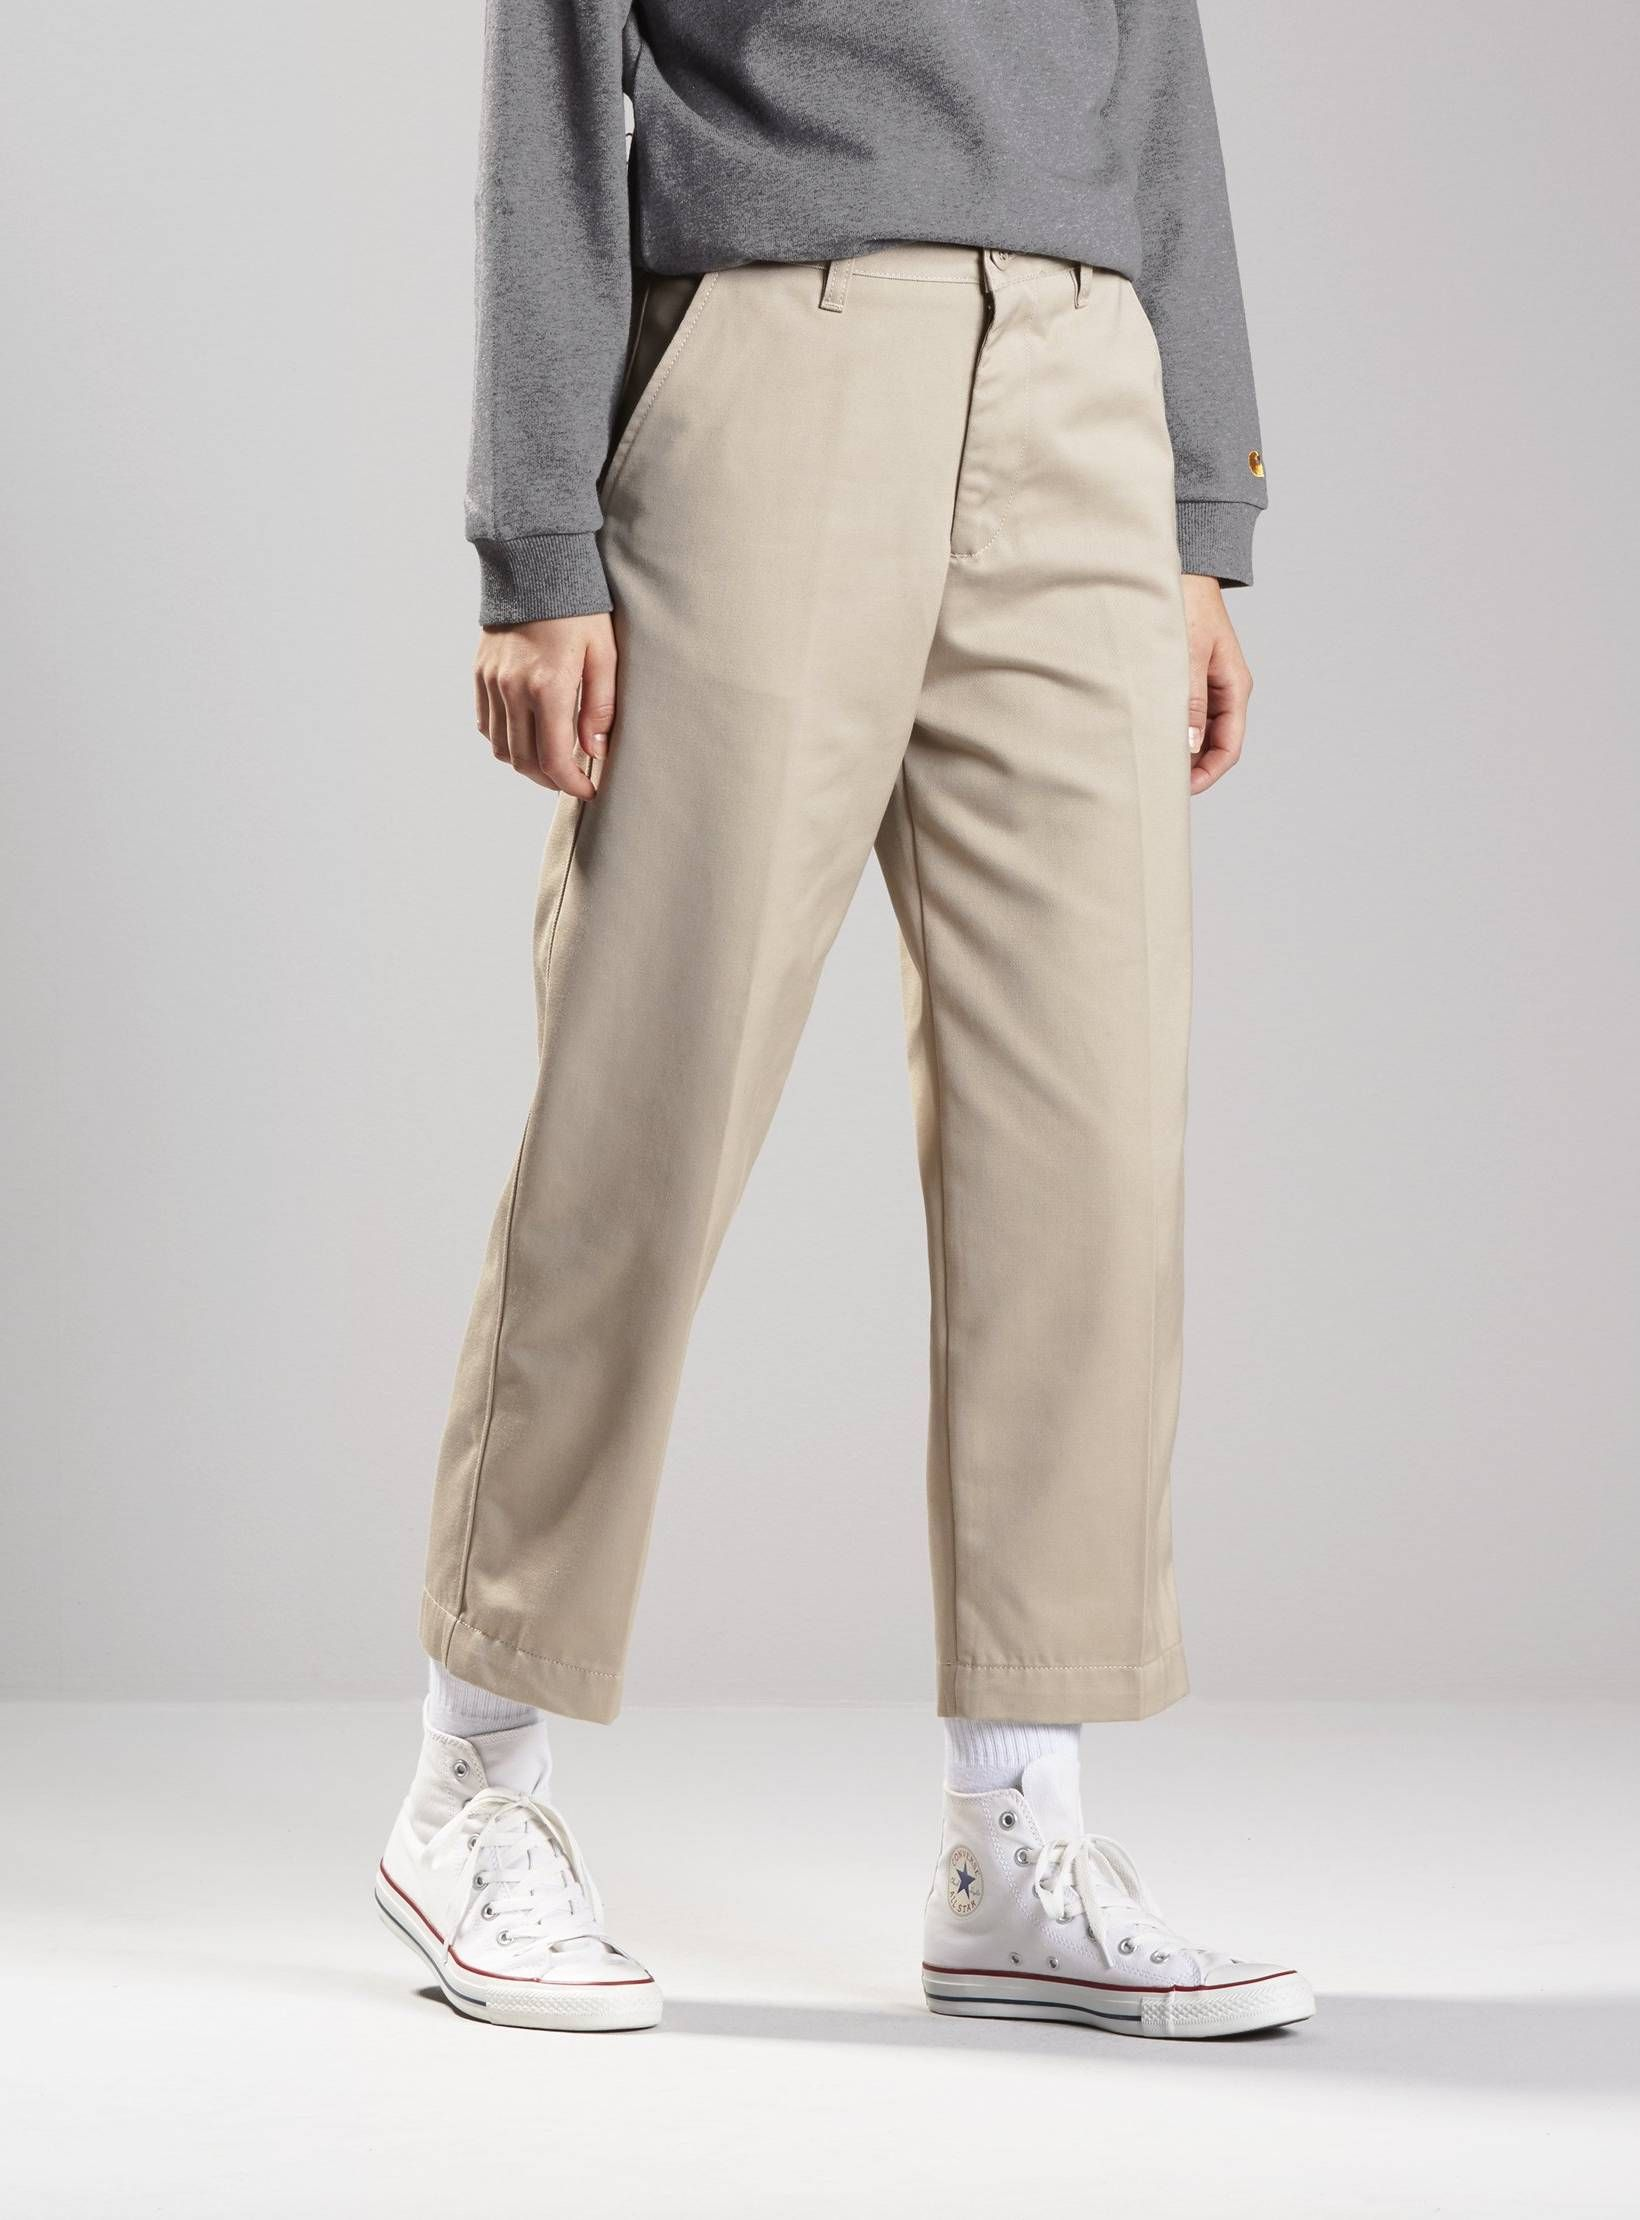 Highwaters Pants : highwaters, pants, Packard, Highwater